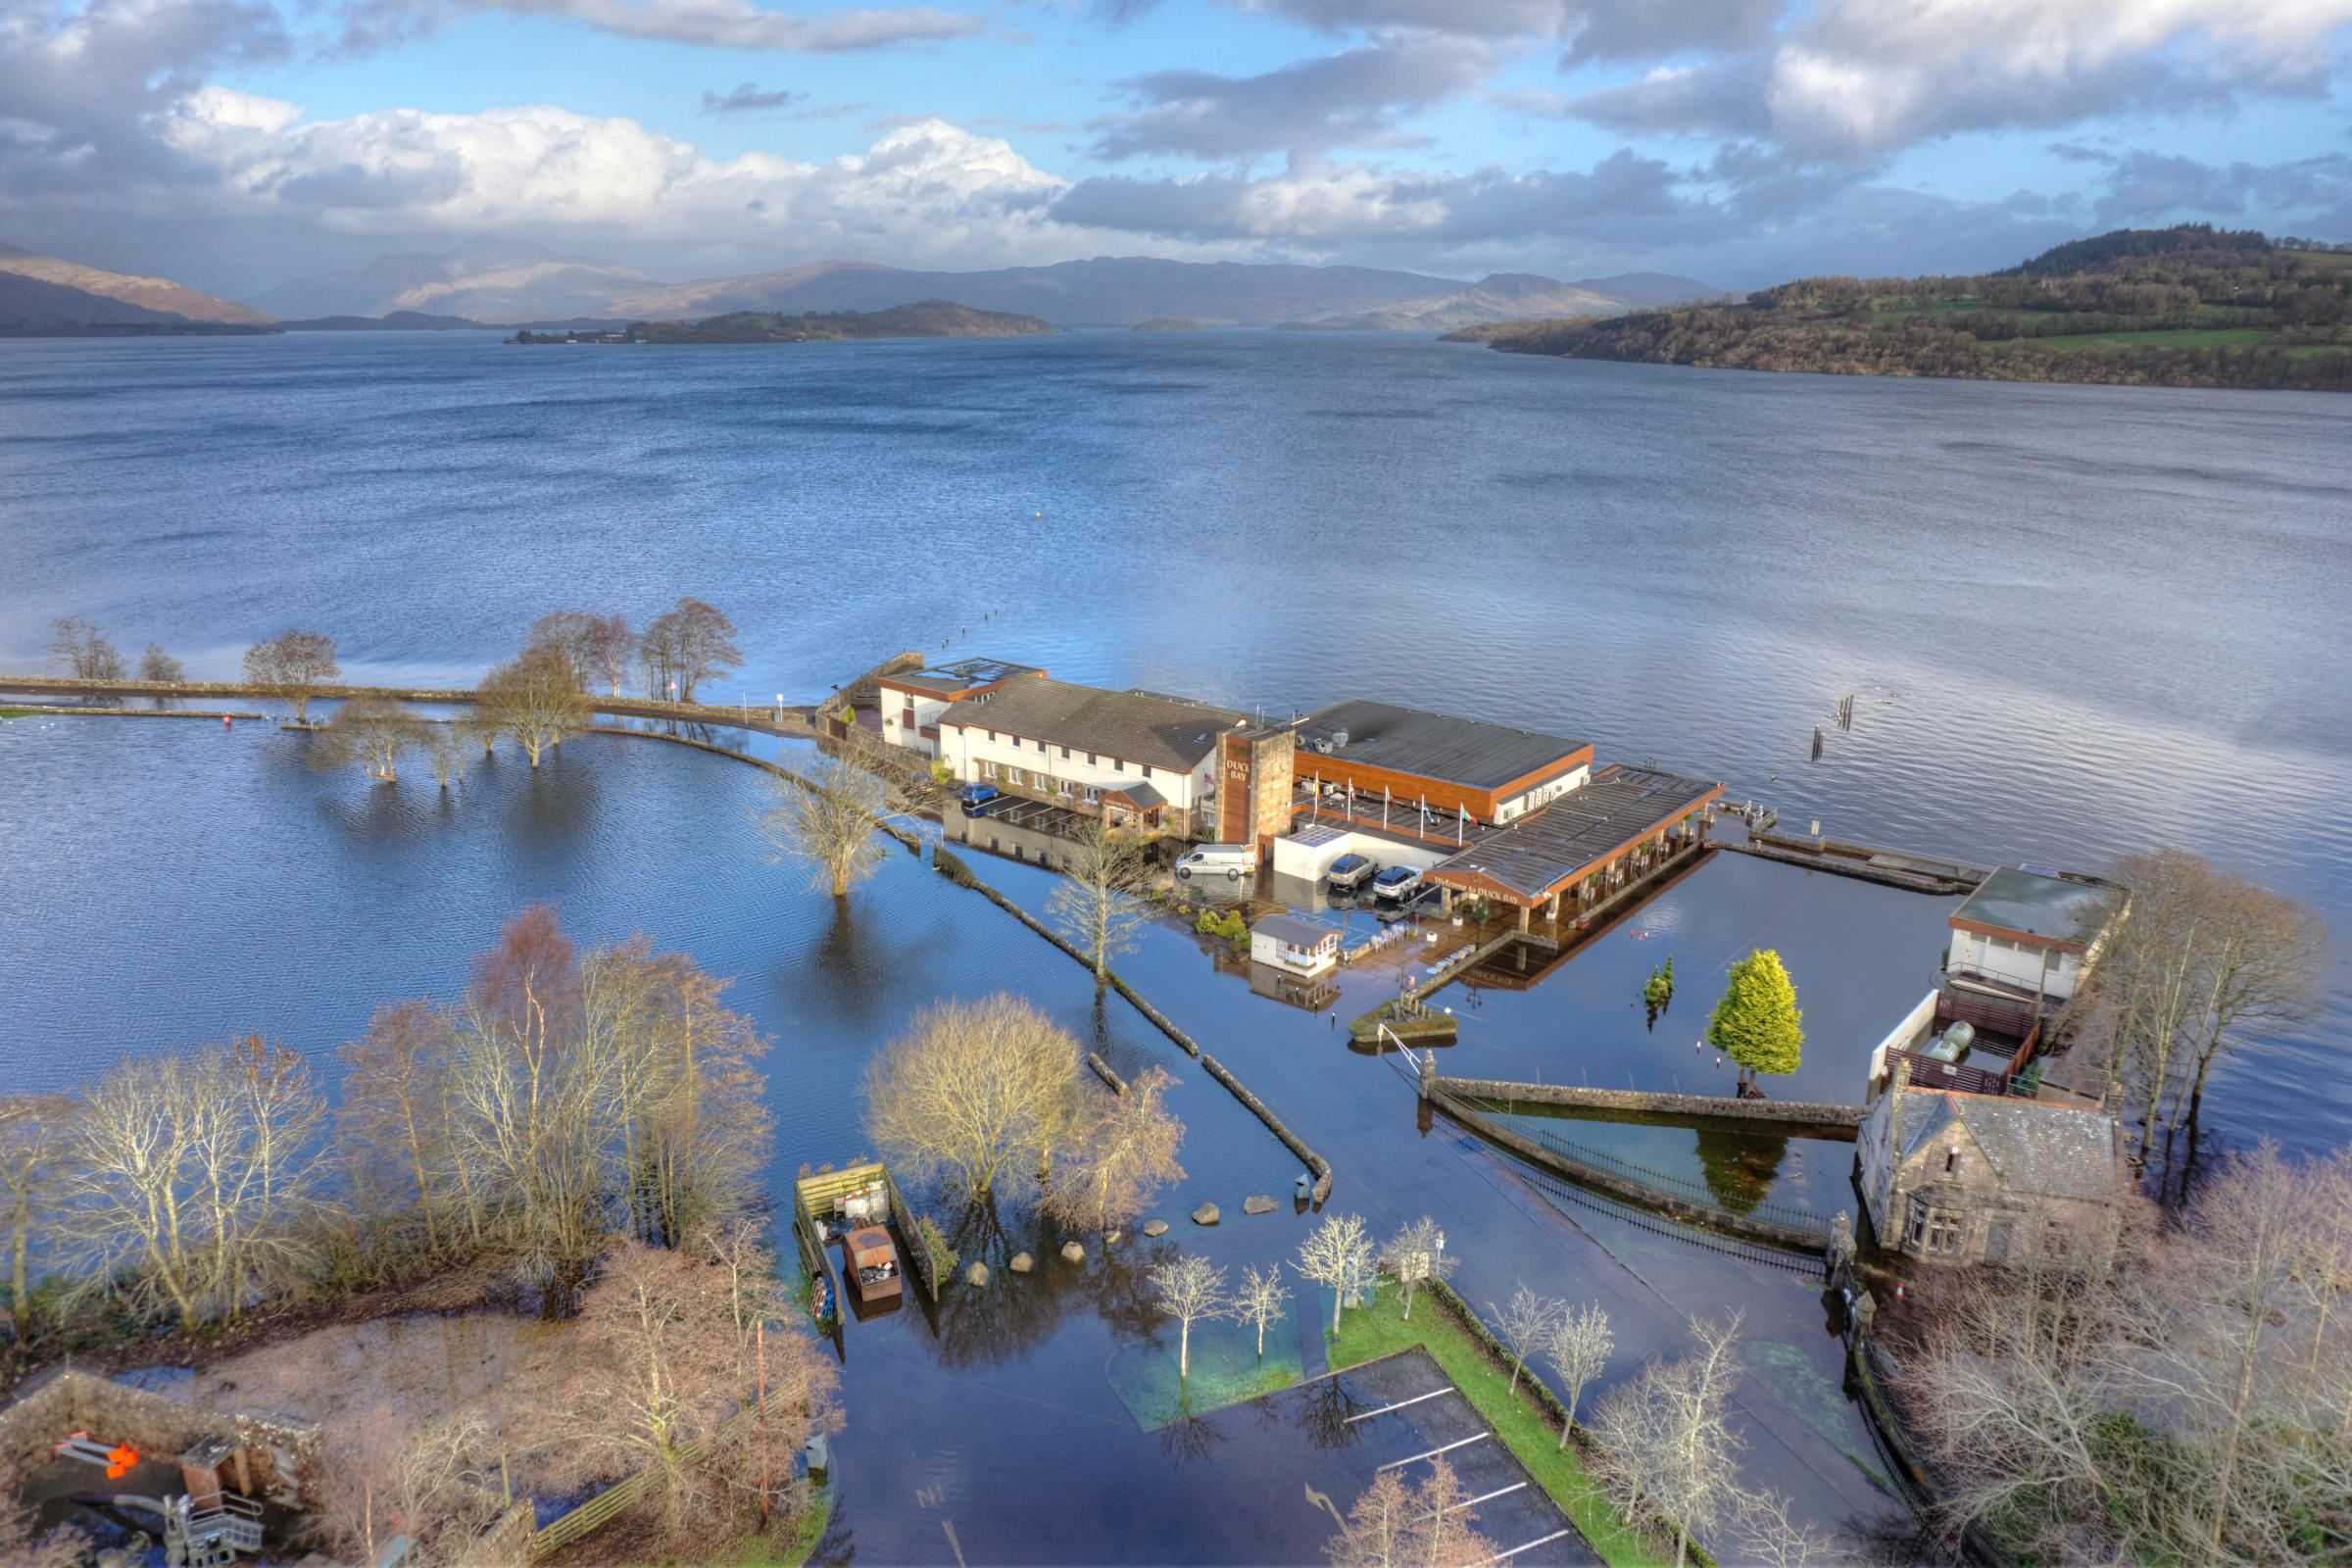 Duck Bay Marina >> Loch Lomond S Duck Bay Hotel Marooned By Flood Water Helensburgh